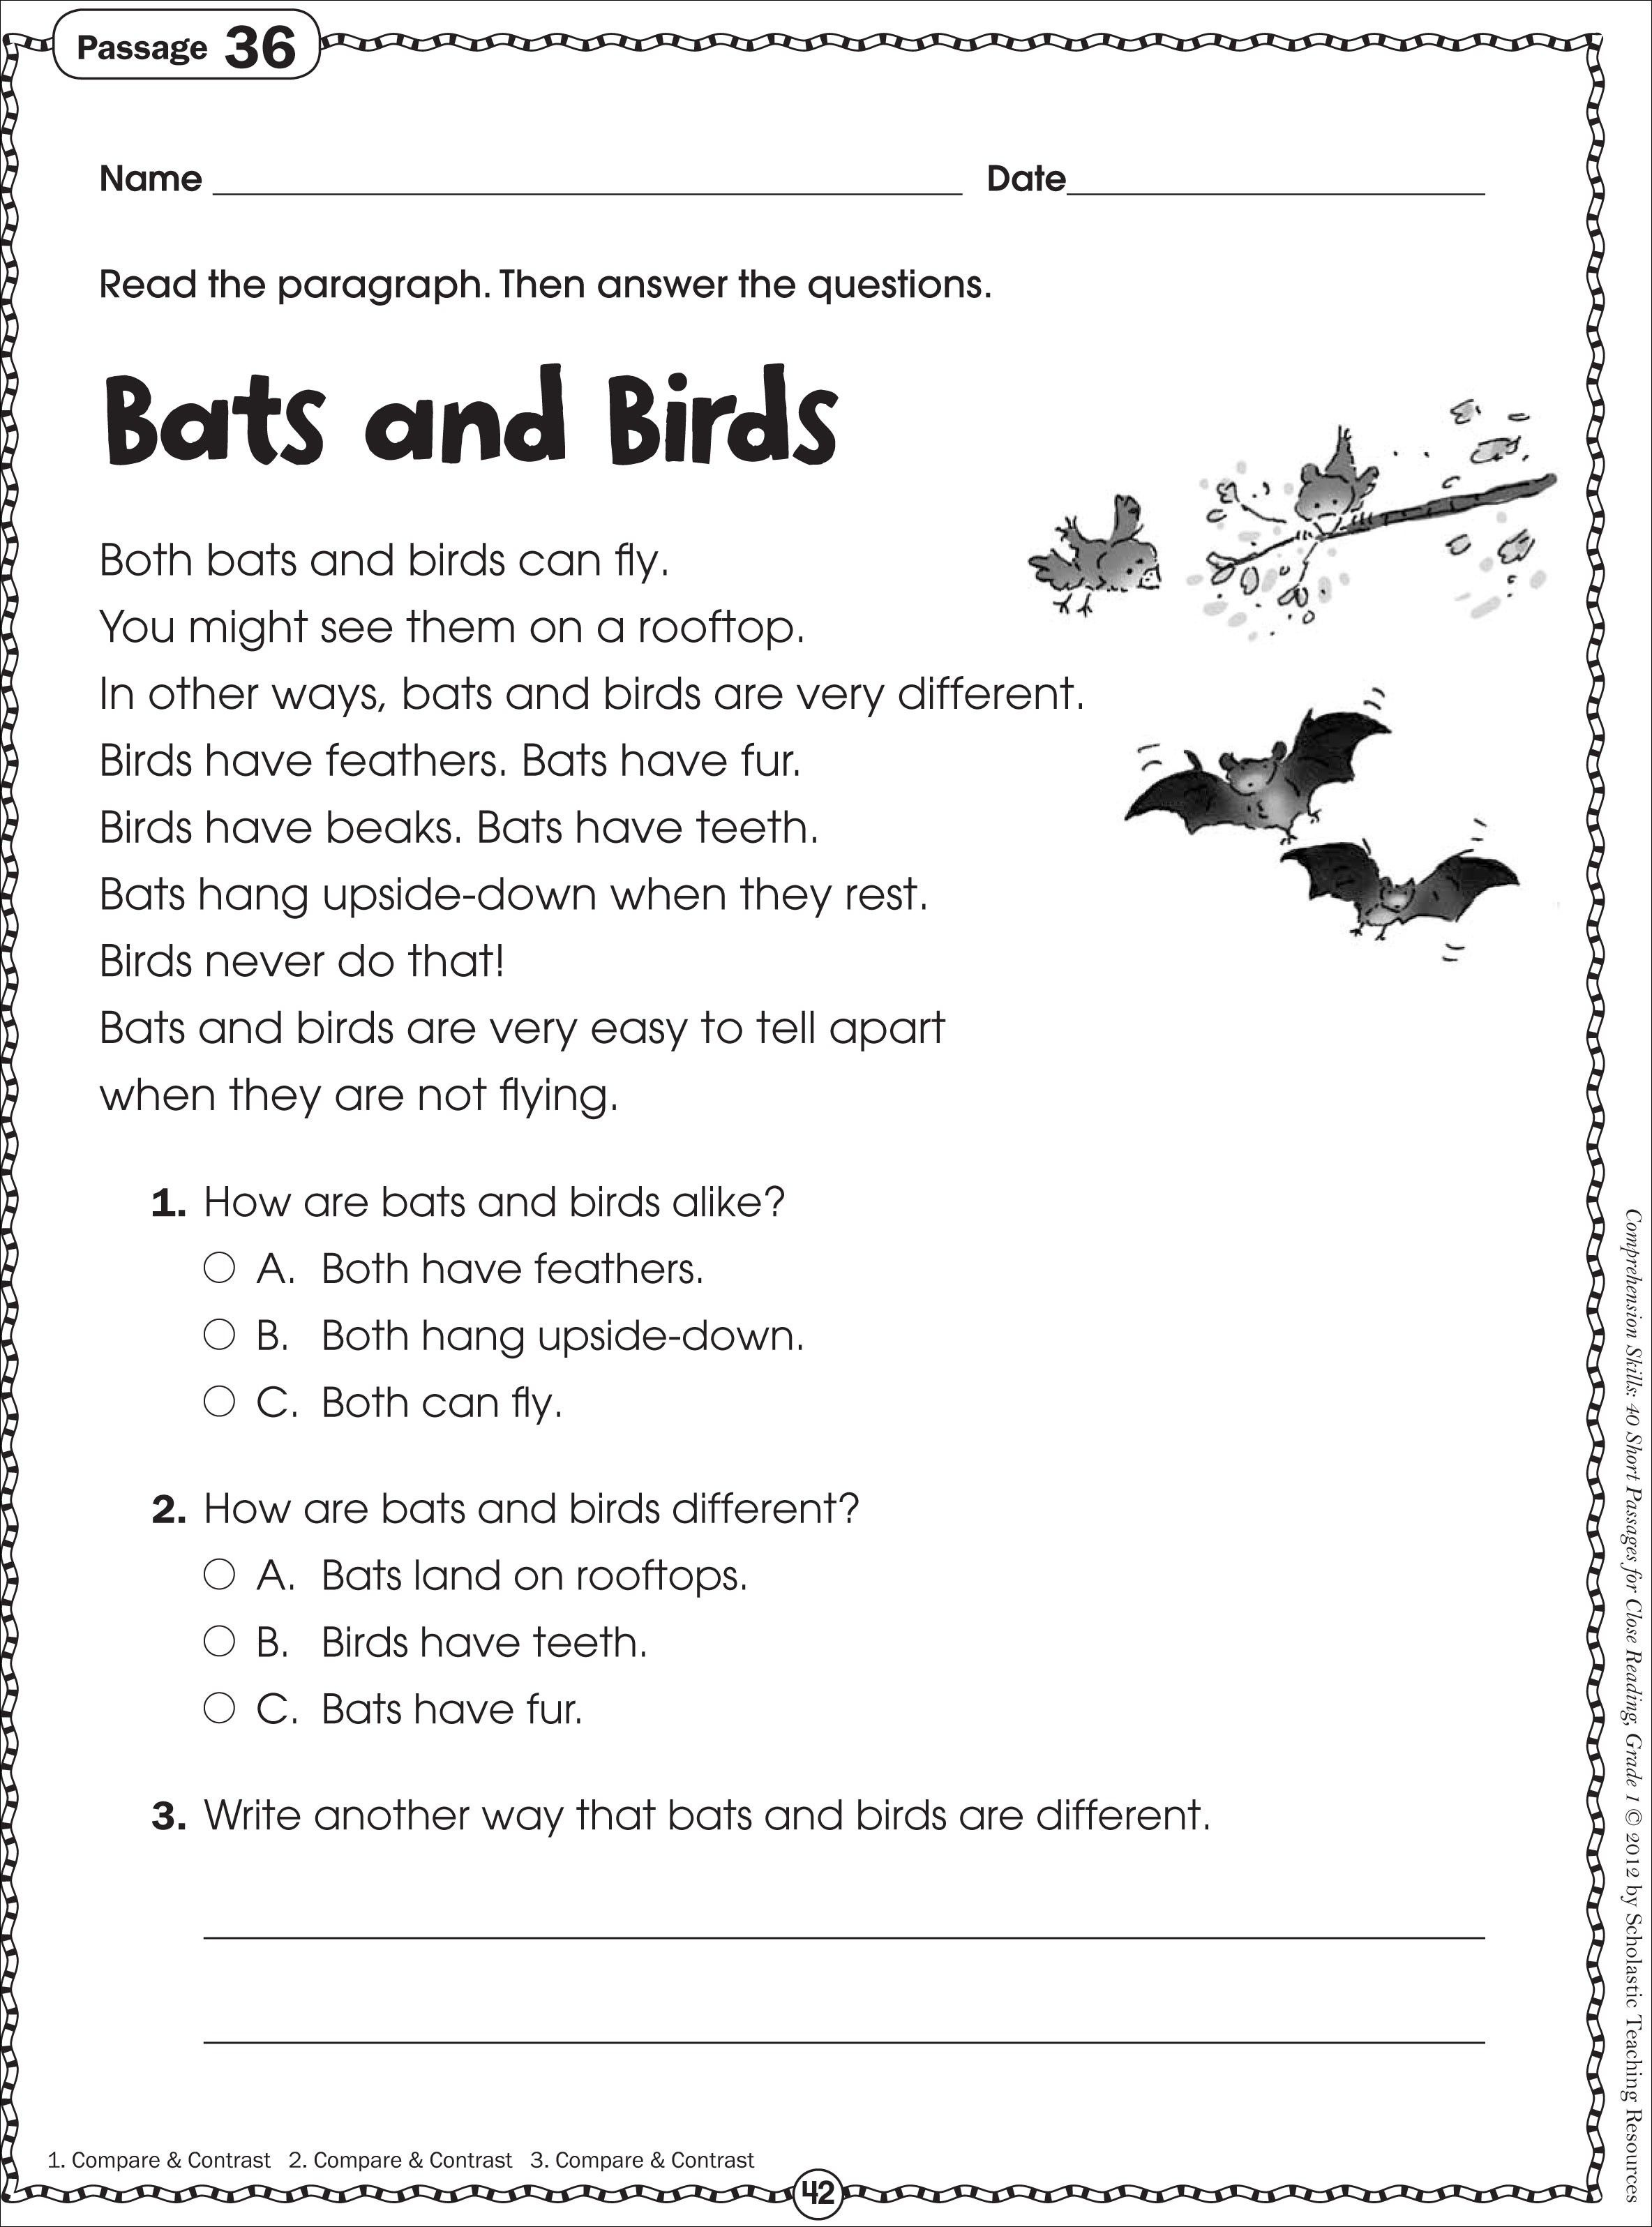 This Is A Reading Comprehension Worksheet Intended To Help